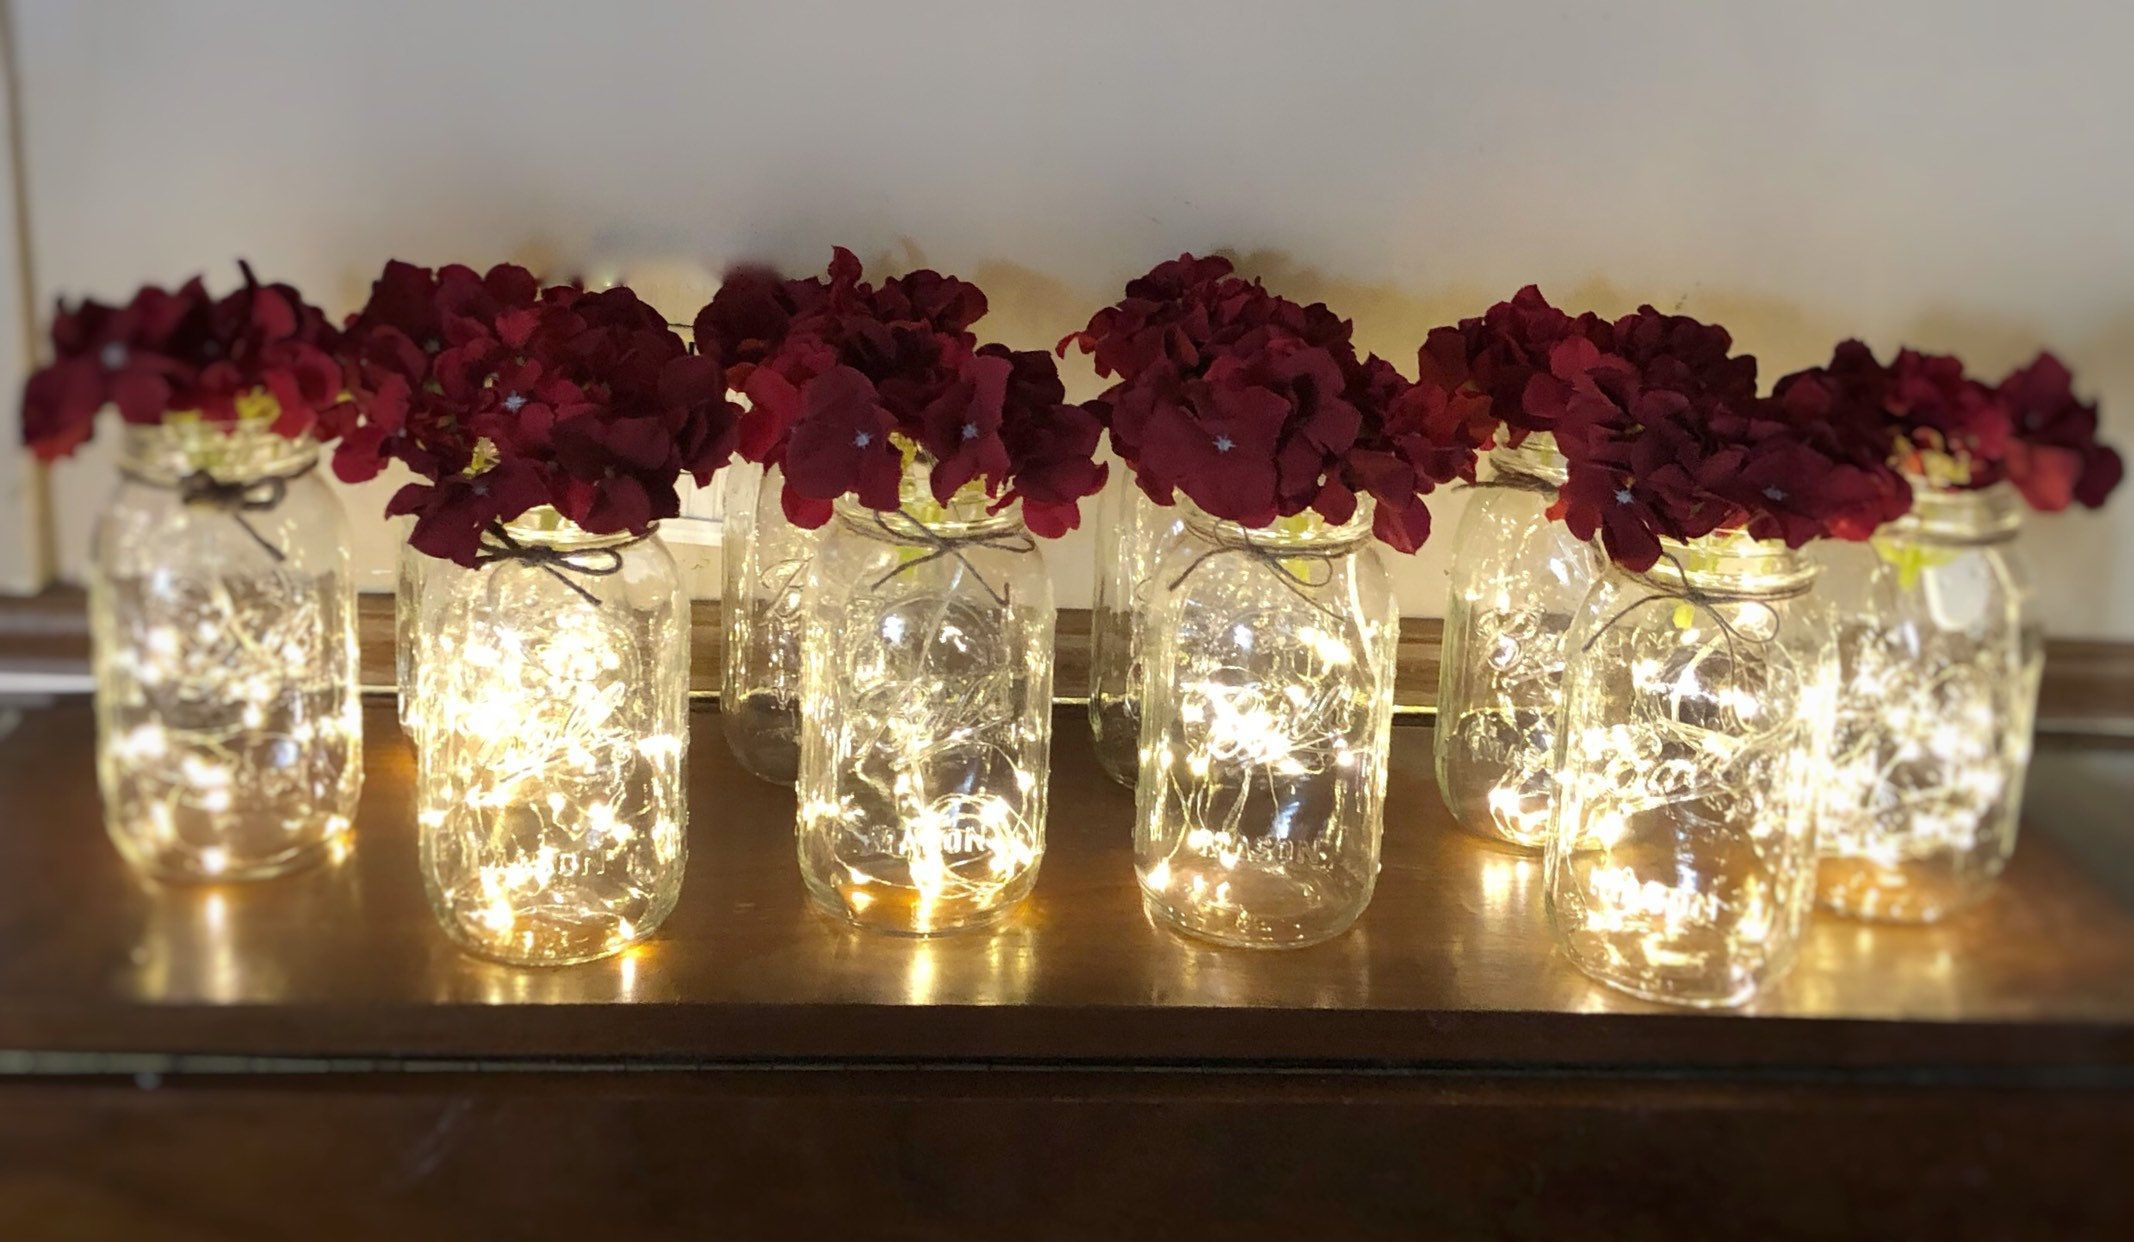 10 Floral Lights Mason Jar Centerpieces, Fairy Lights, Rustic Wedding Decorations, Baby Shower Decor, Country Party Decorations, Sweet 16 #fairylights